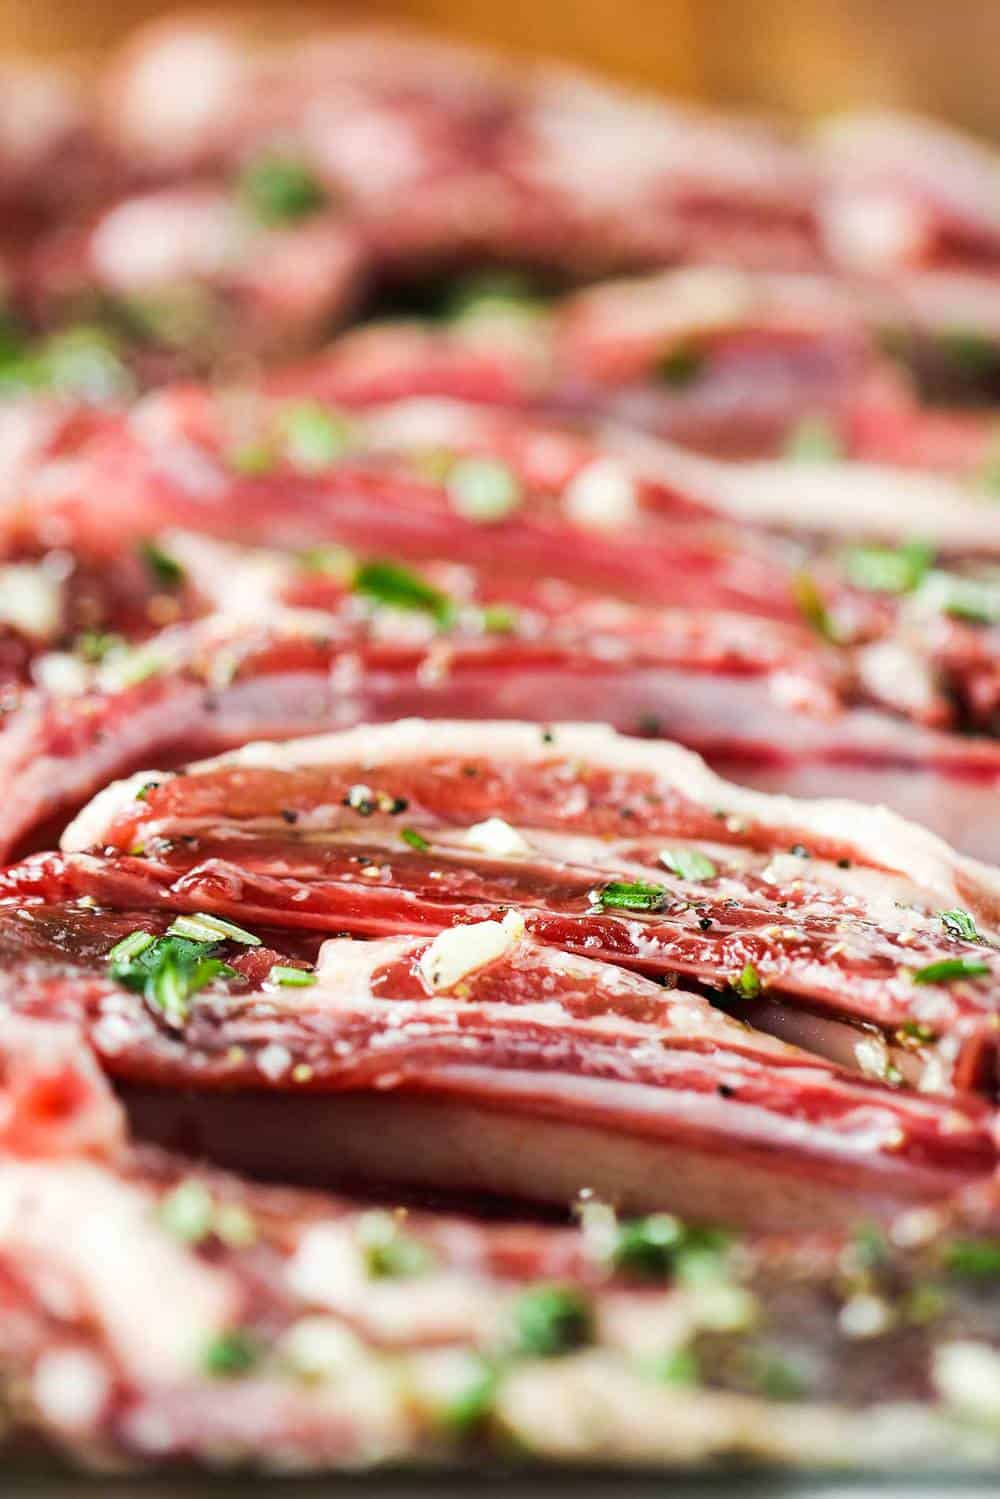 Lamb lollipops in marinade